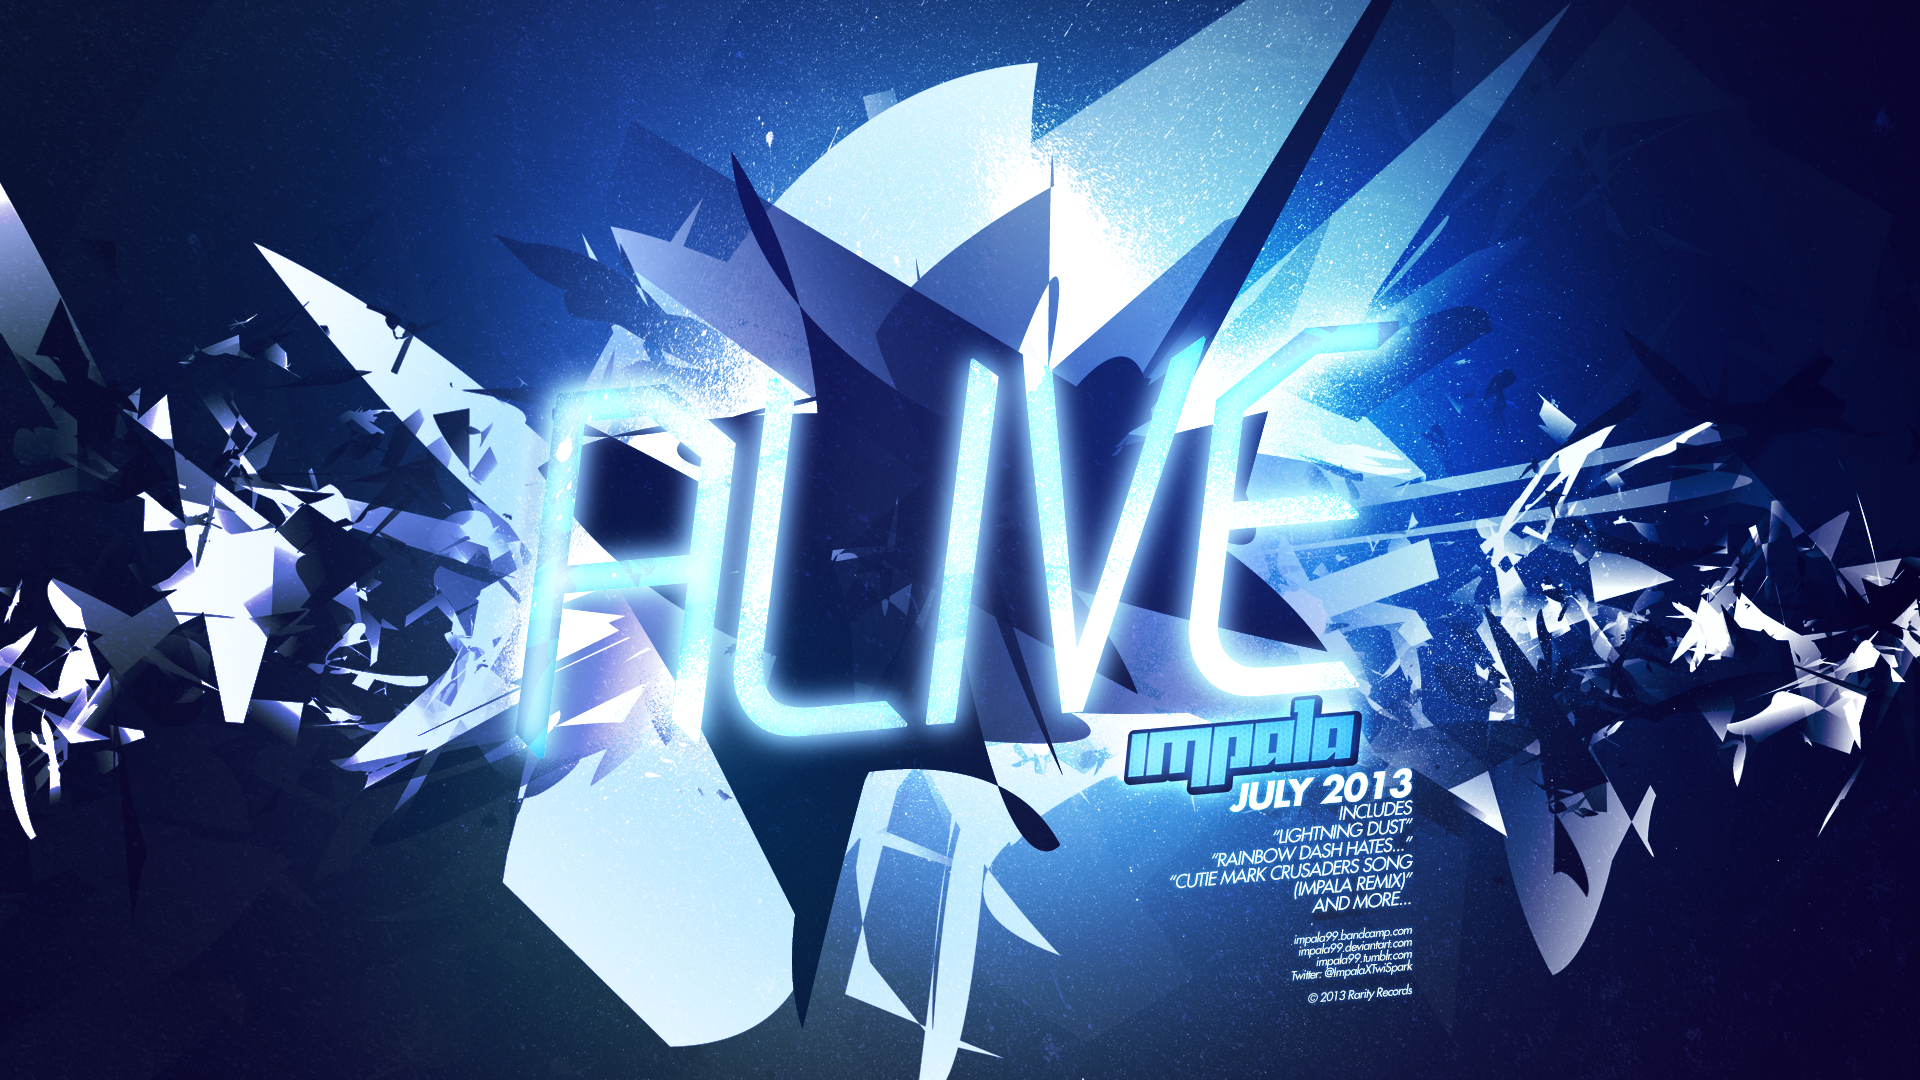 Alive [DEBUT ALBUM, JULY 2013] by AdrianImpalaMata